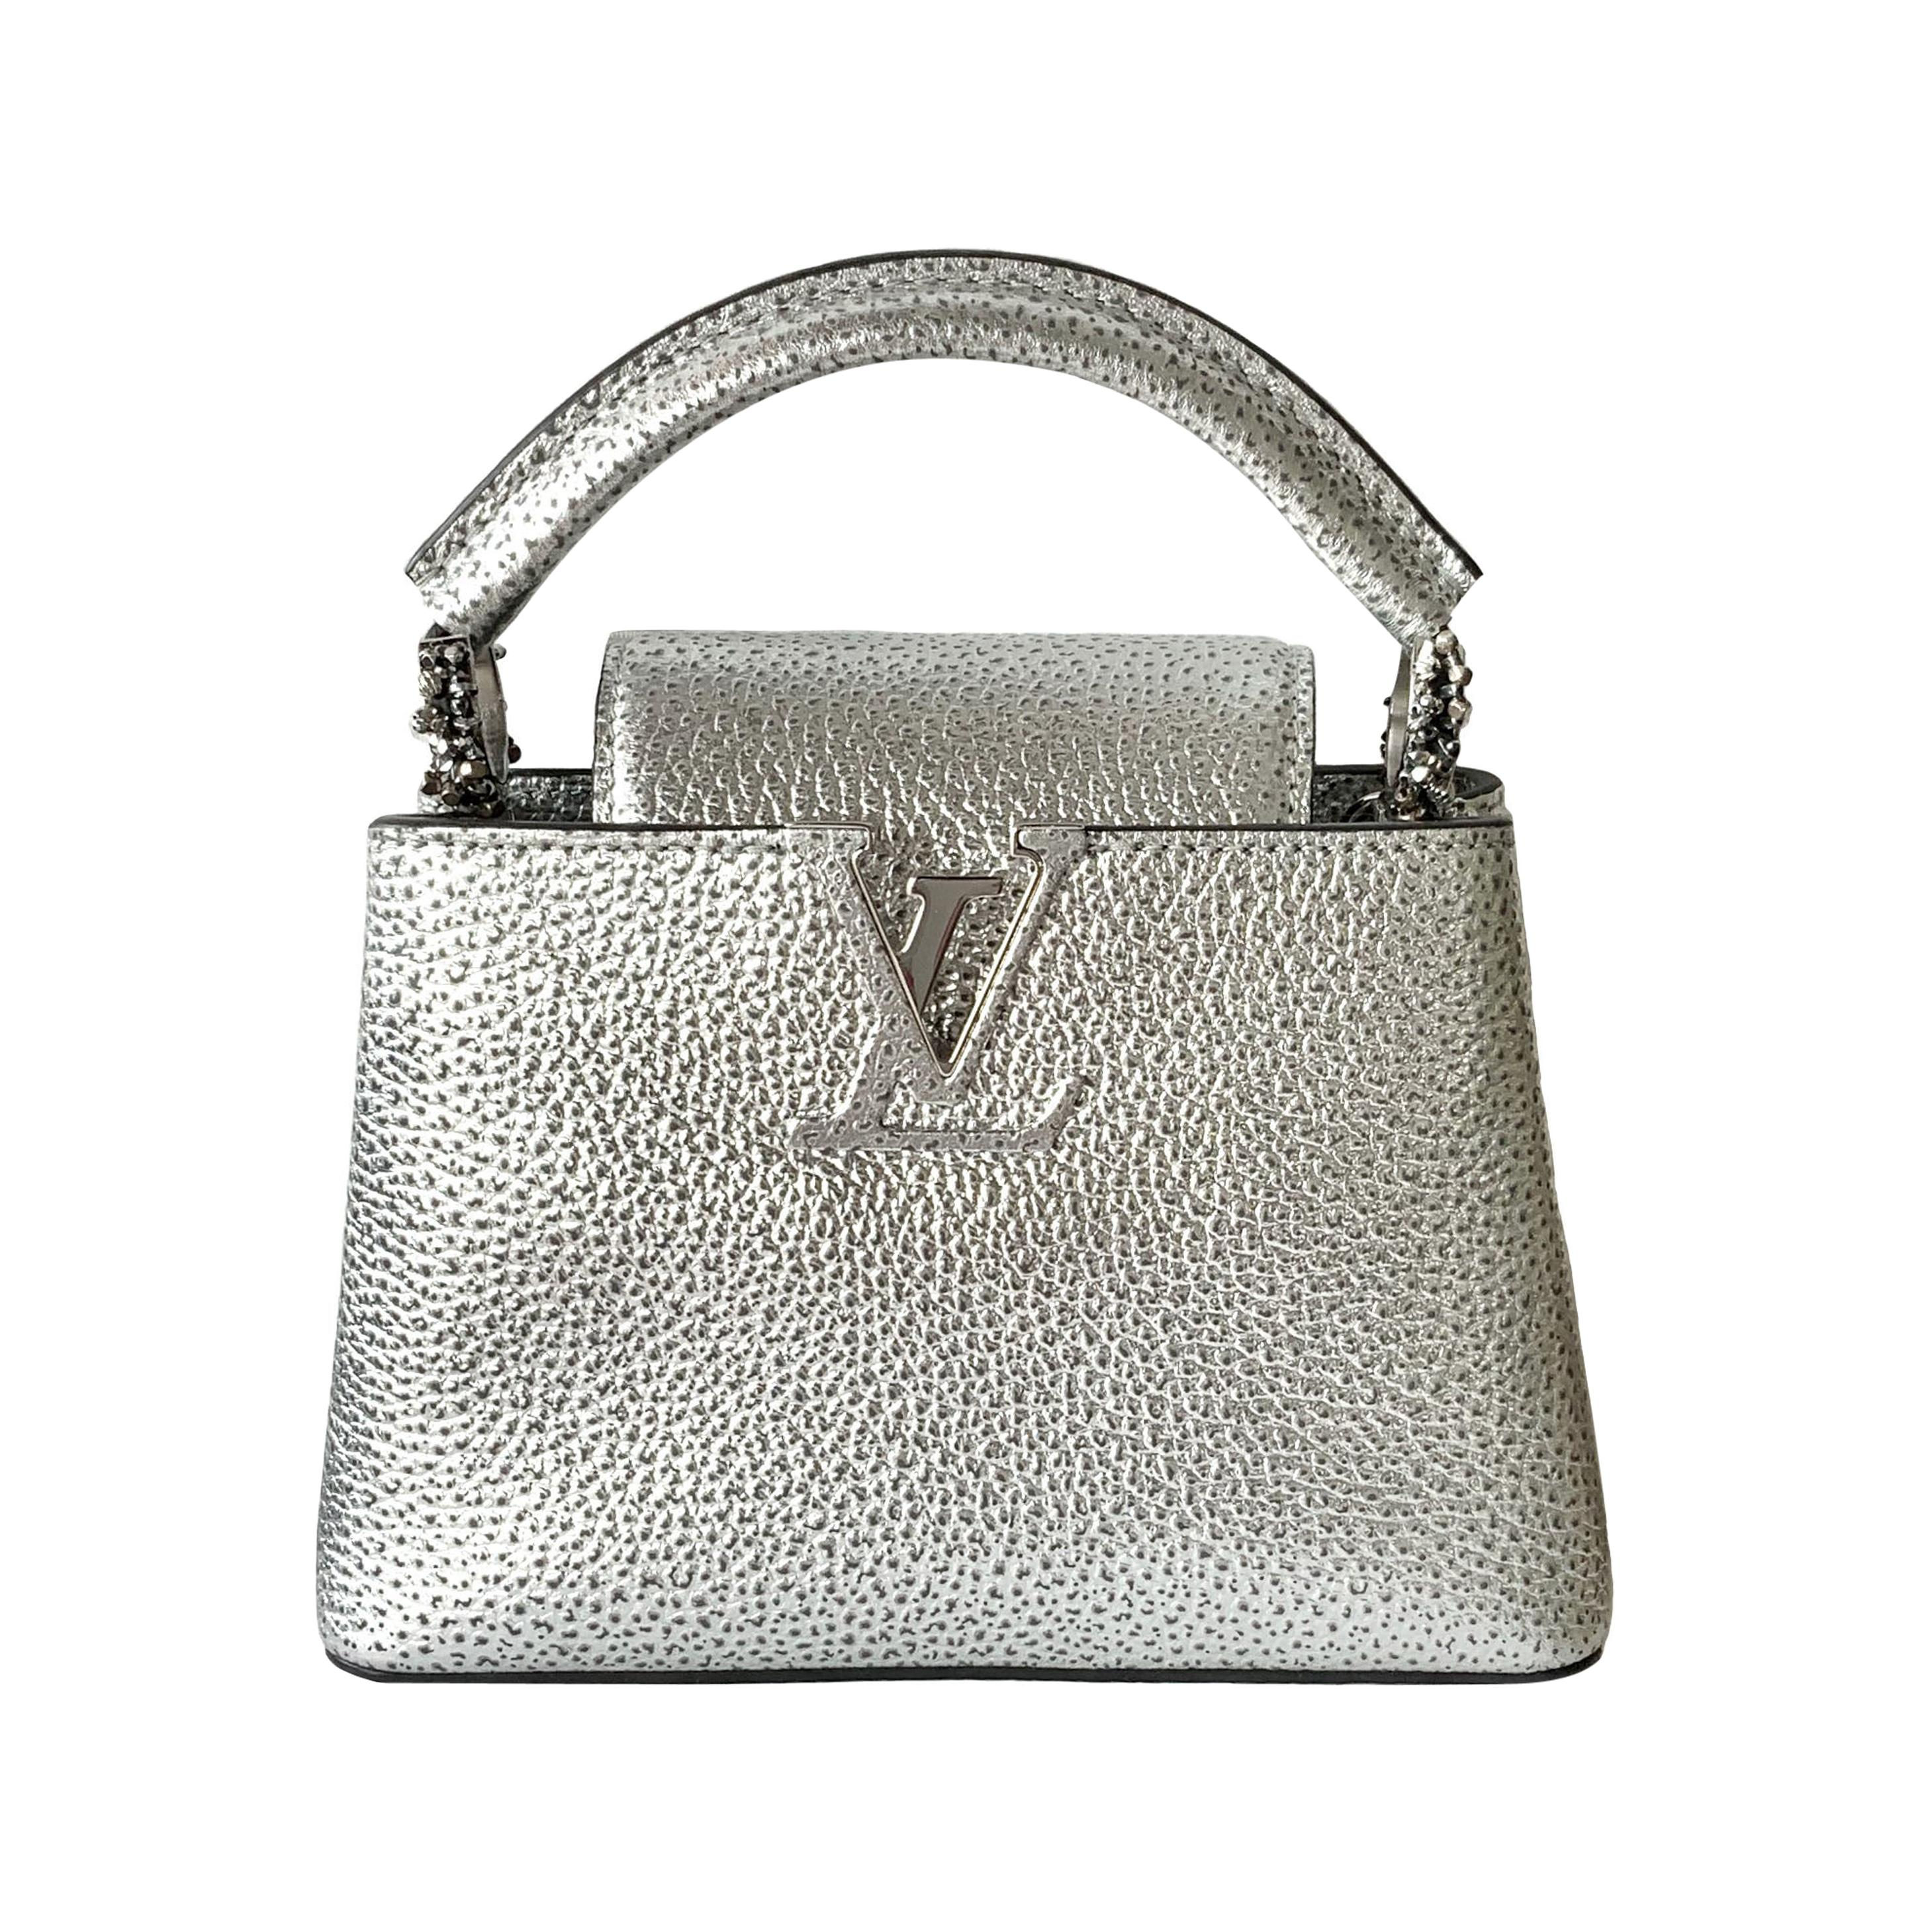 Louis Vuitton 2018 Limited Edition Metallic Silver Capucines Mini Bag